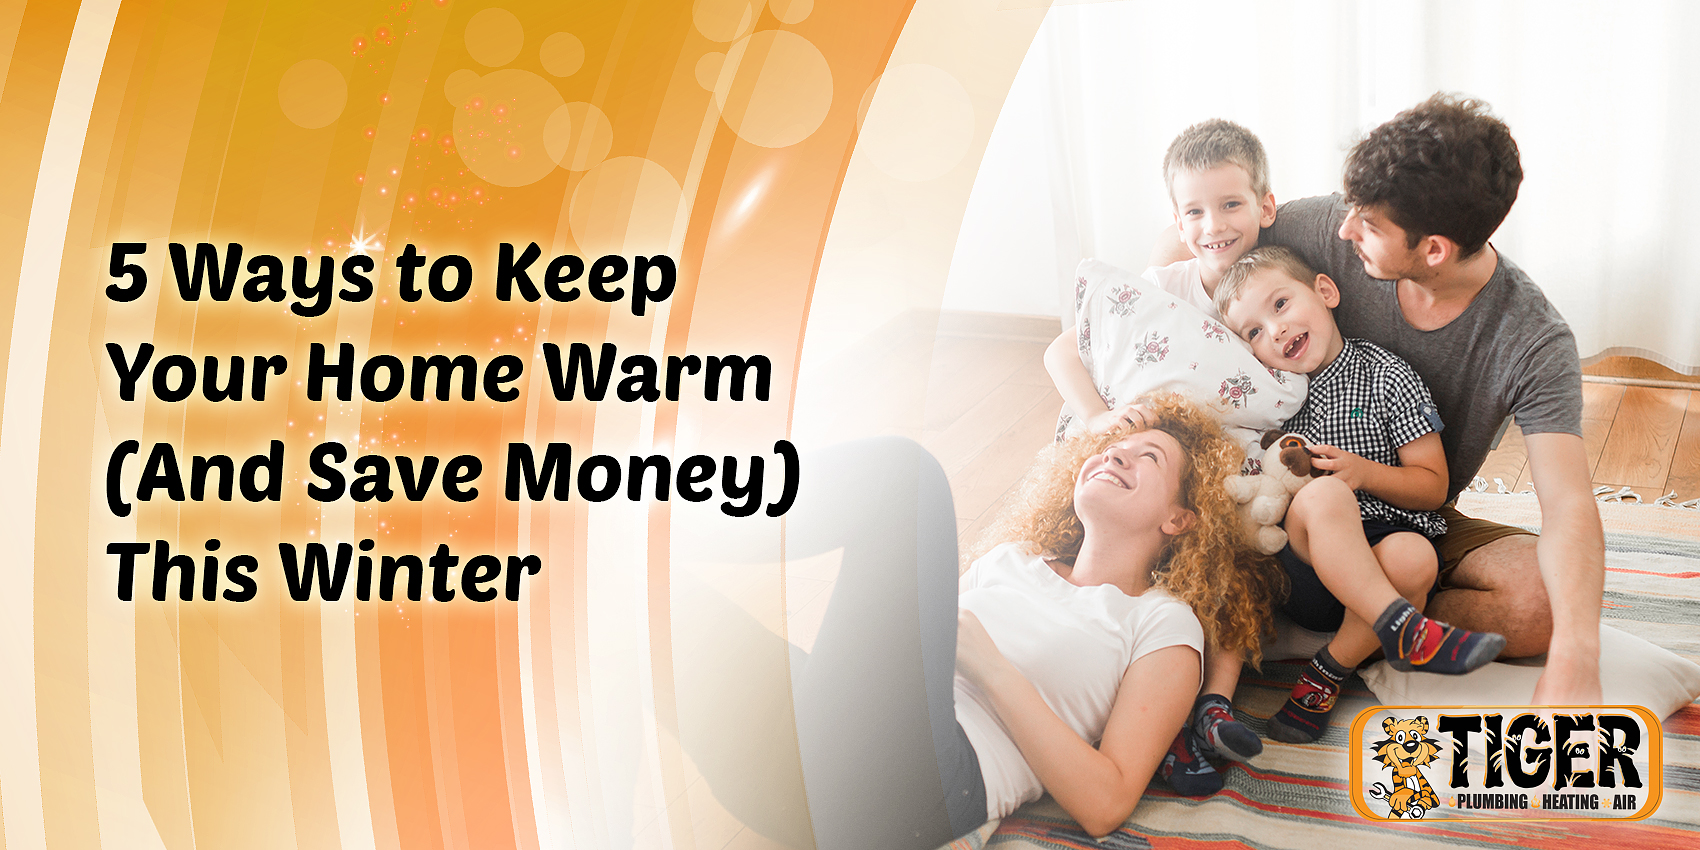 5 Ways to Keep Your Home Warm (And Save Money) This Winter